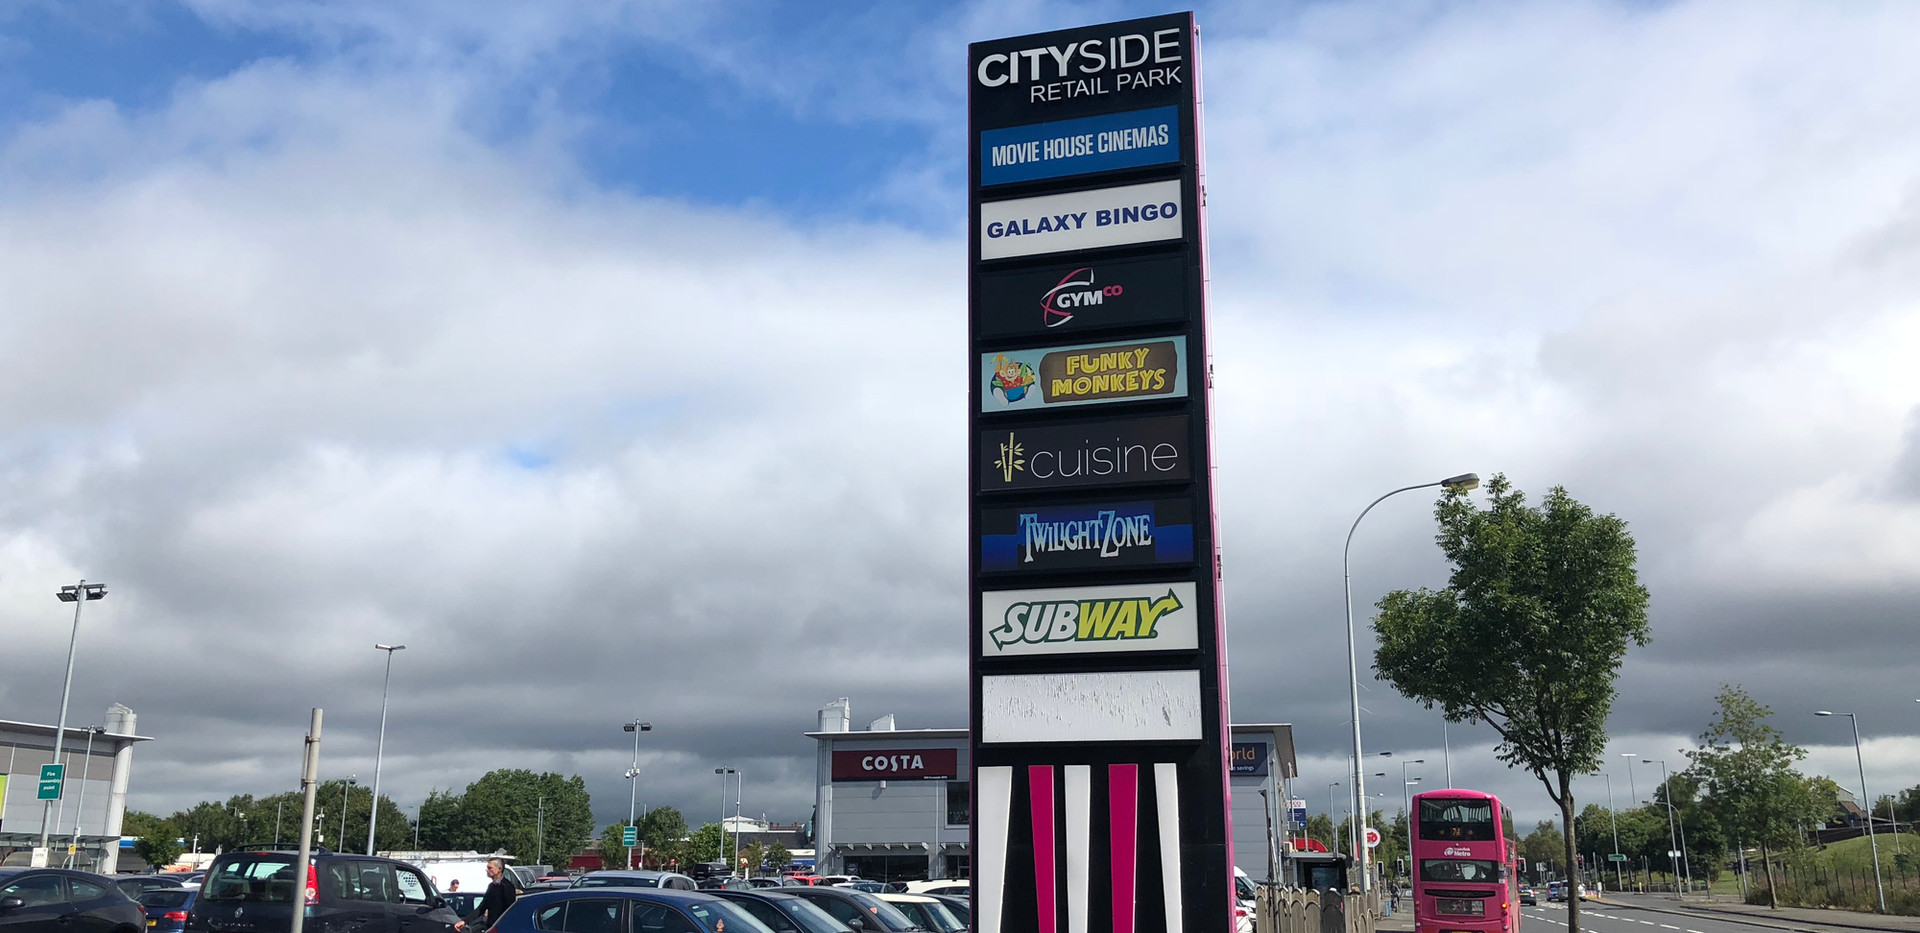 Cityside Shopping Centre 4.jpg